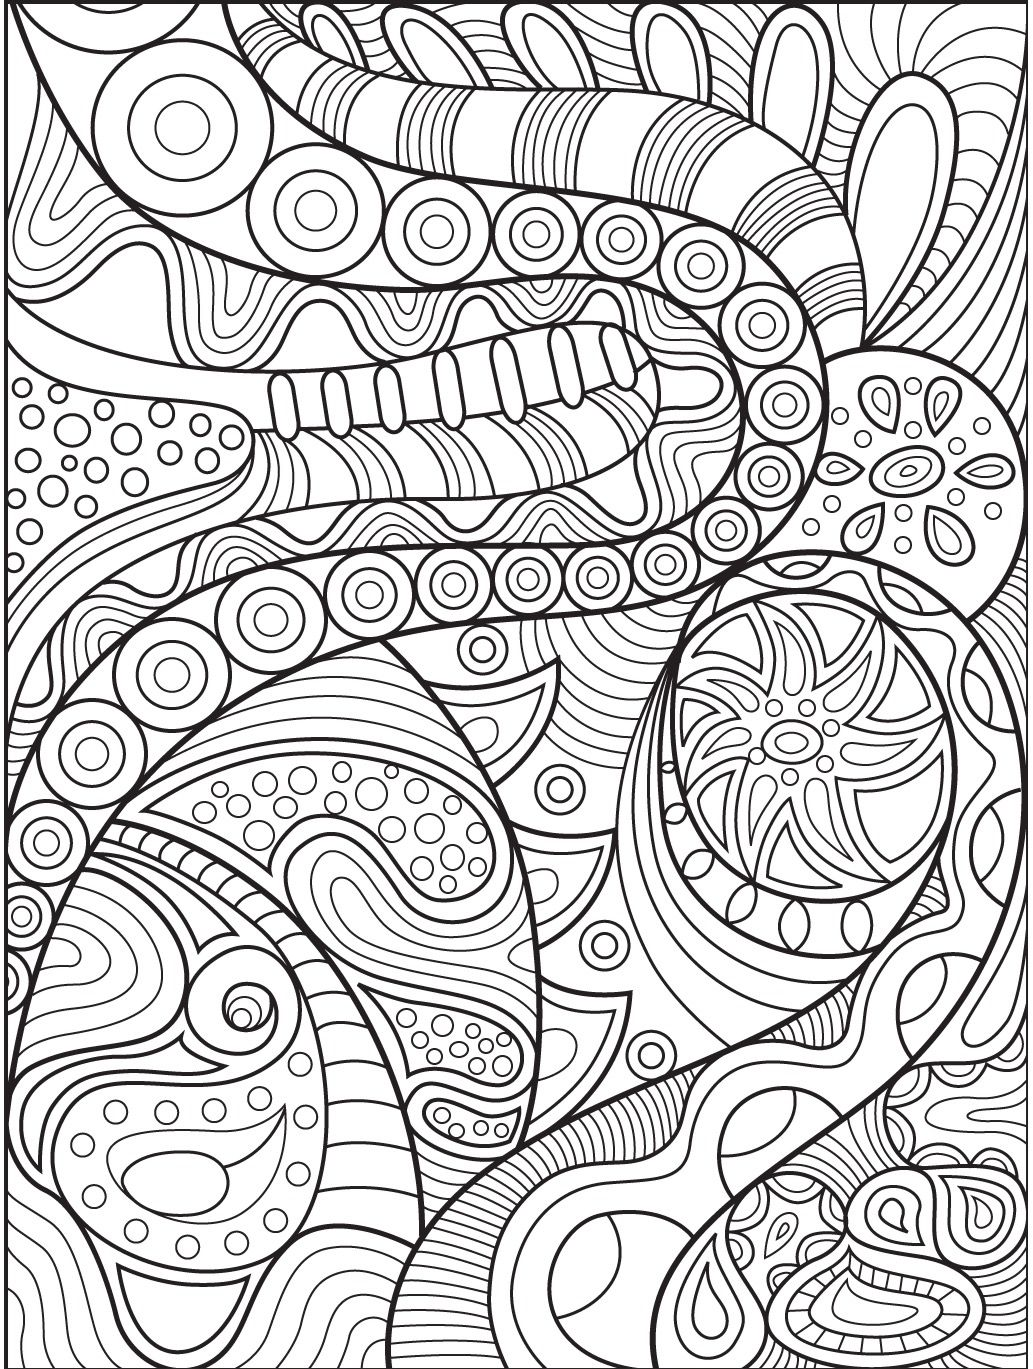 Abstract coloring page on Colorish: coloring book app for adults